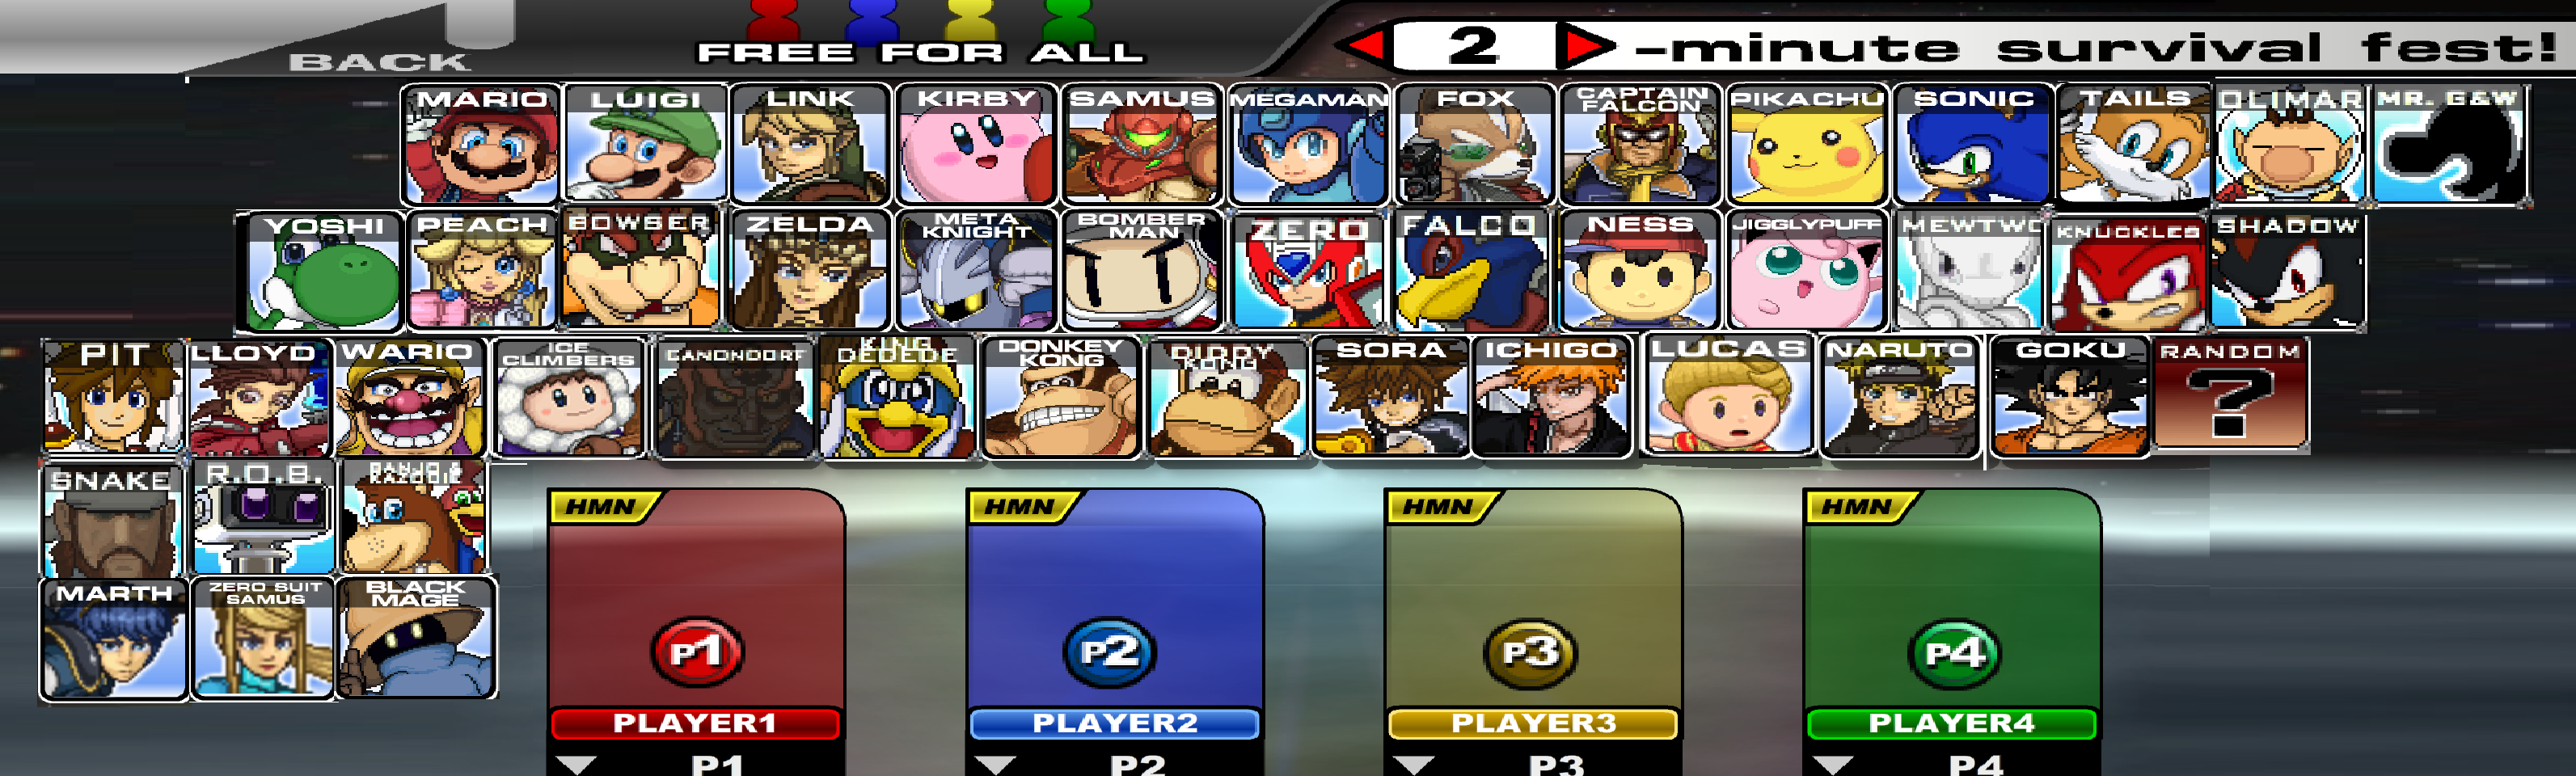 super smash flah